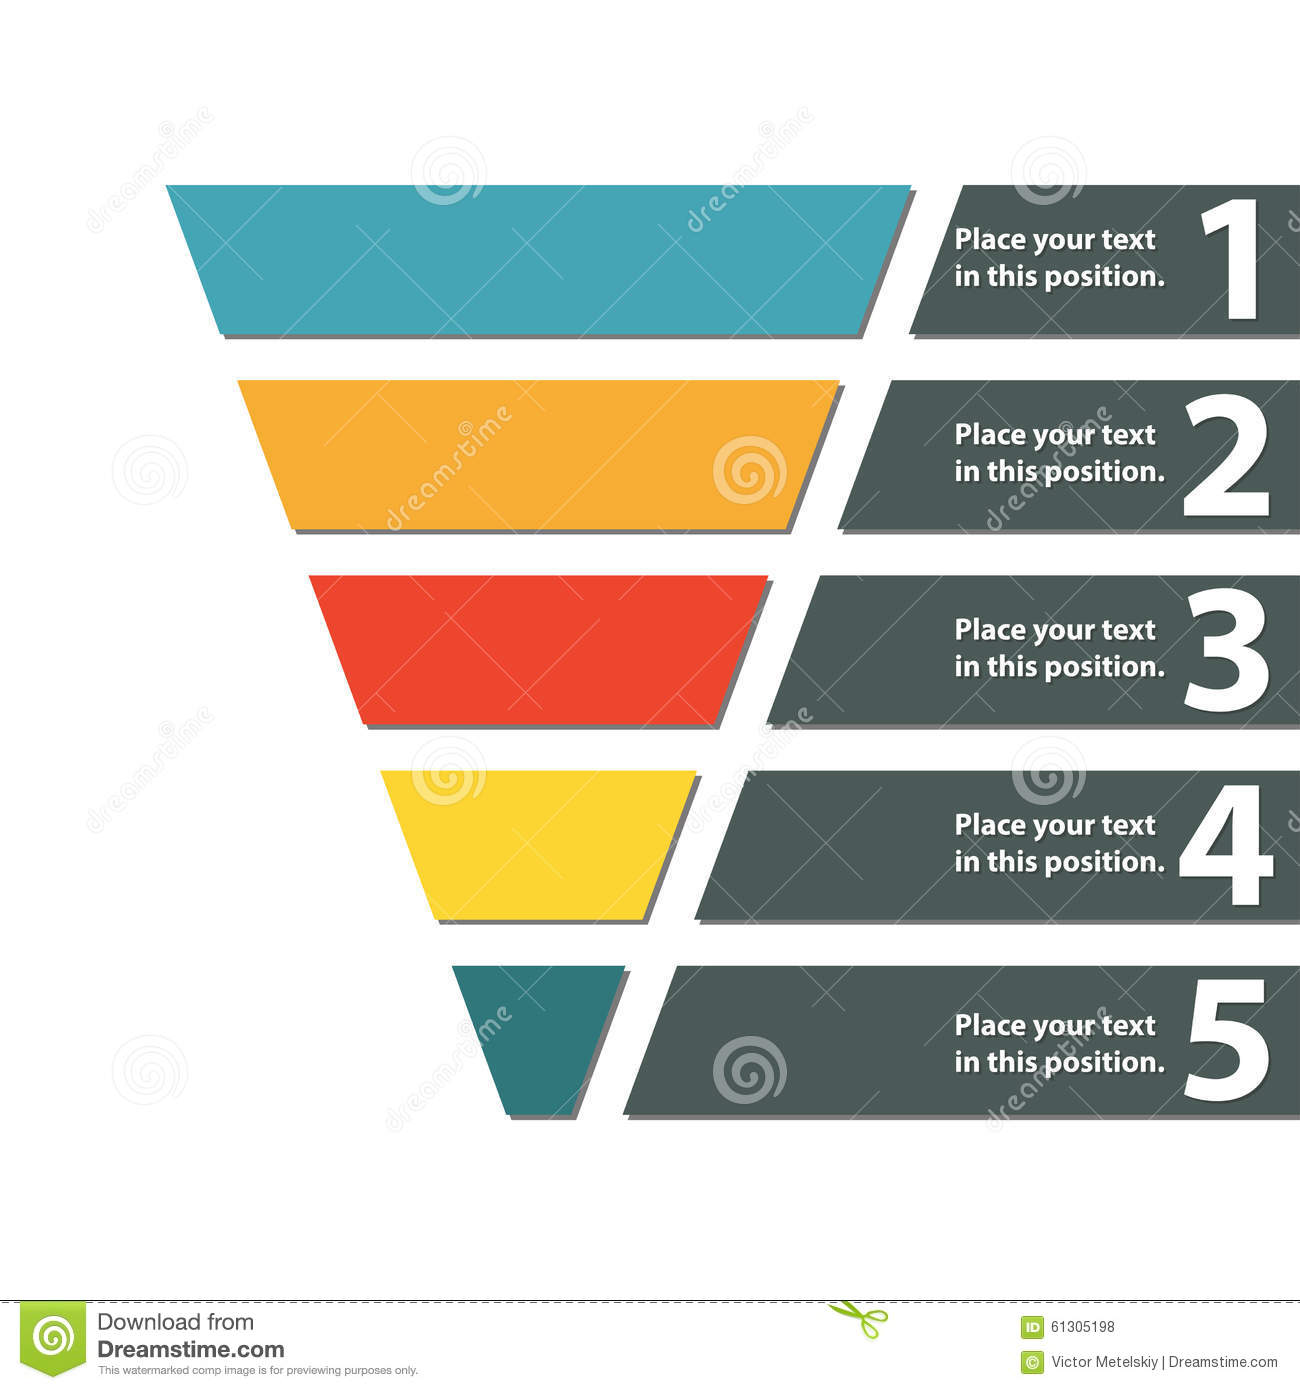 hight resolution of funnel symbol infographic or web design element template for marketing conversion or sales colorful vector illustration